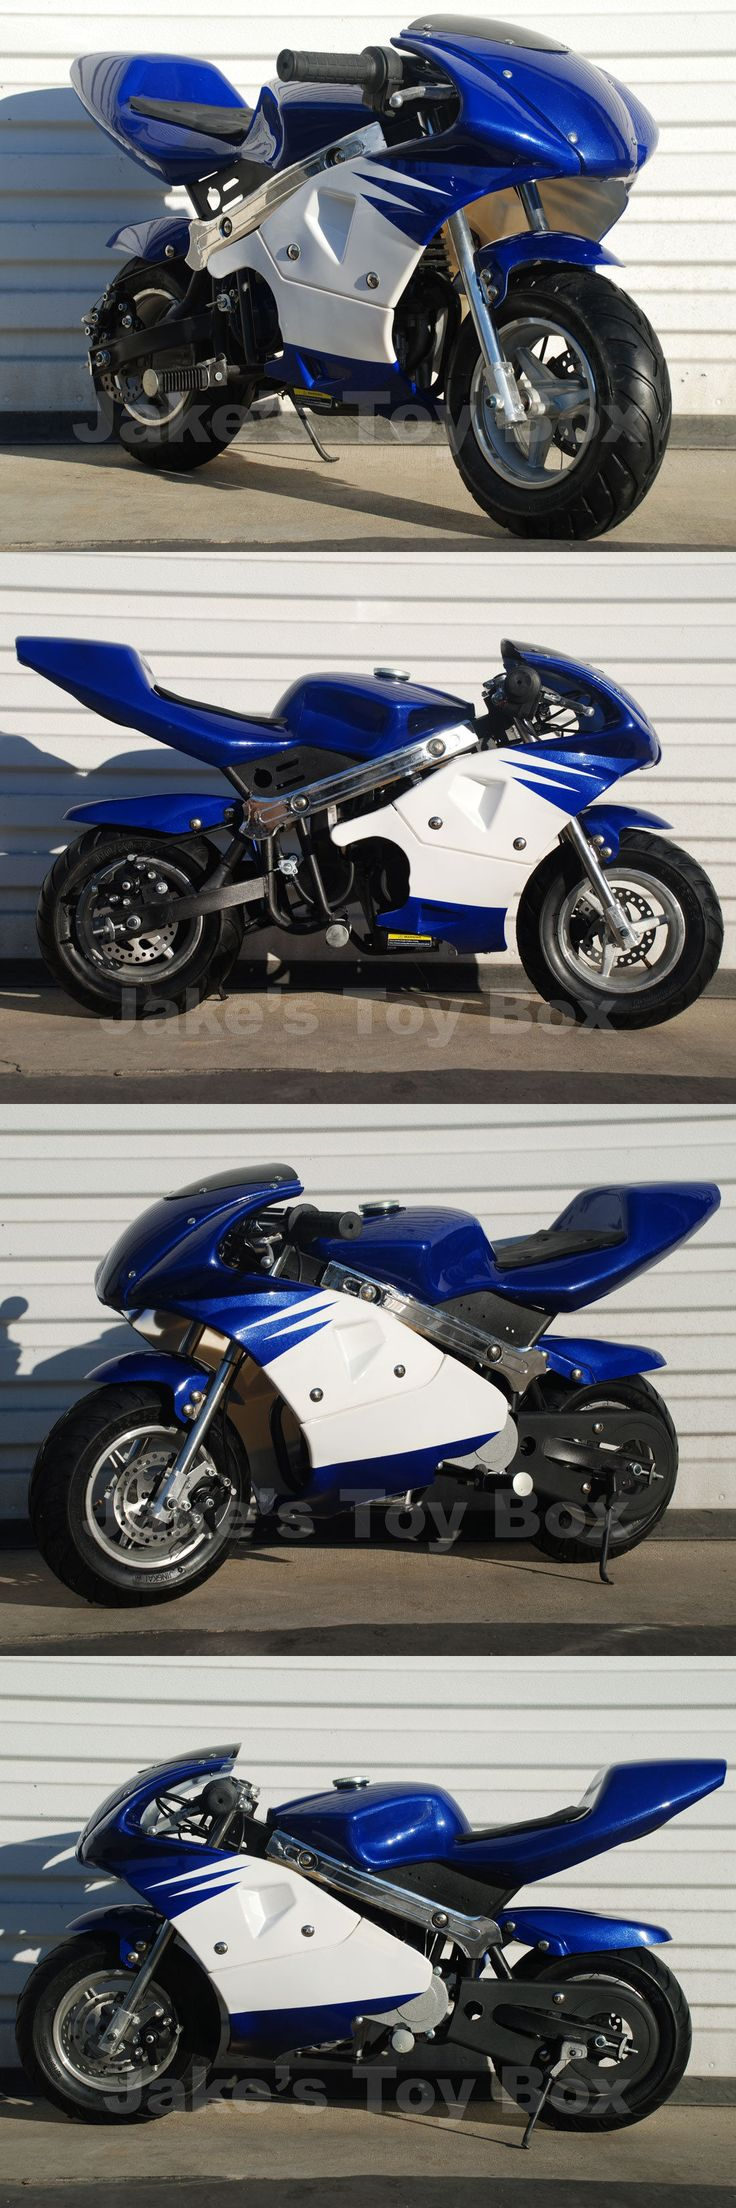 Gas Scooters 75211: Gas Powered Kids Mini Pocket Rocket 40Cc Pocket Bike - Blue -> BUY IT NOW ONLY: $290 on eBay!